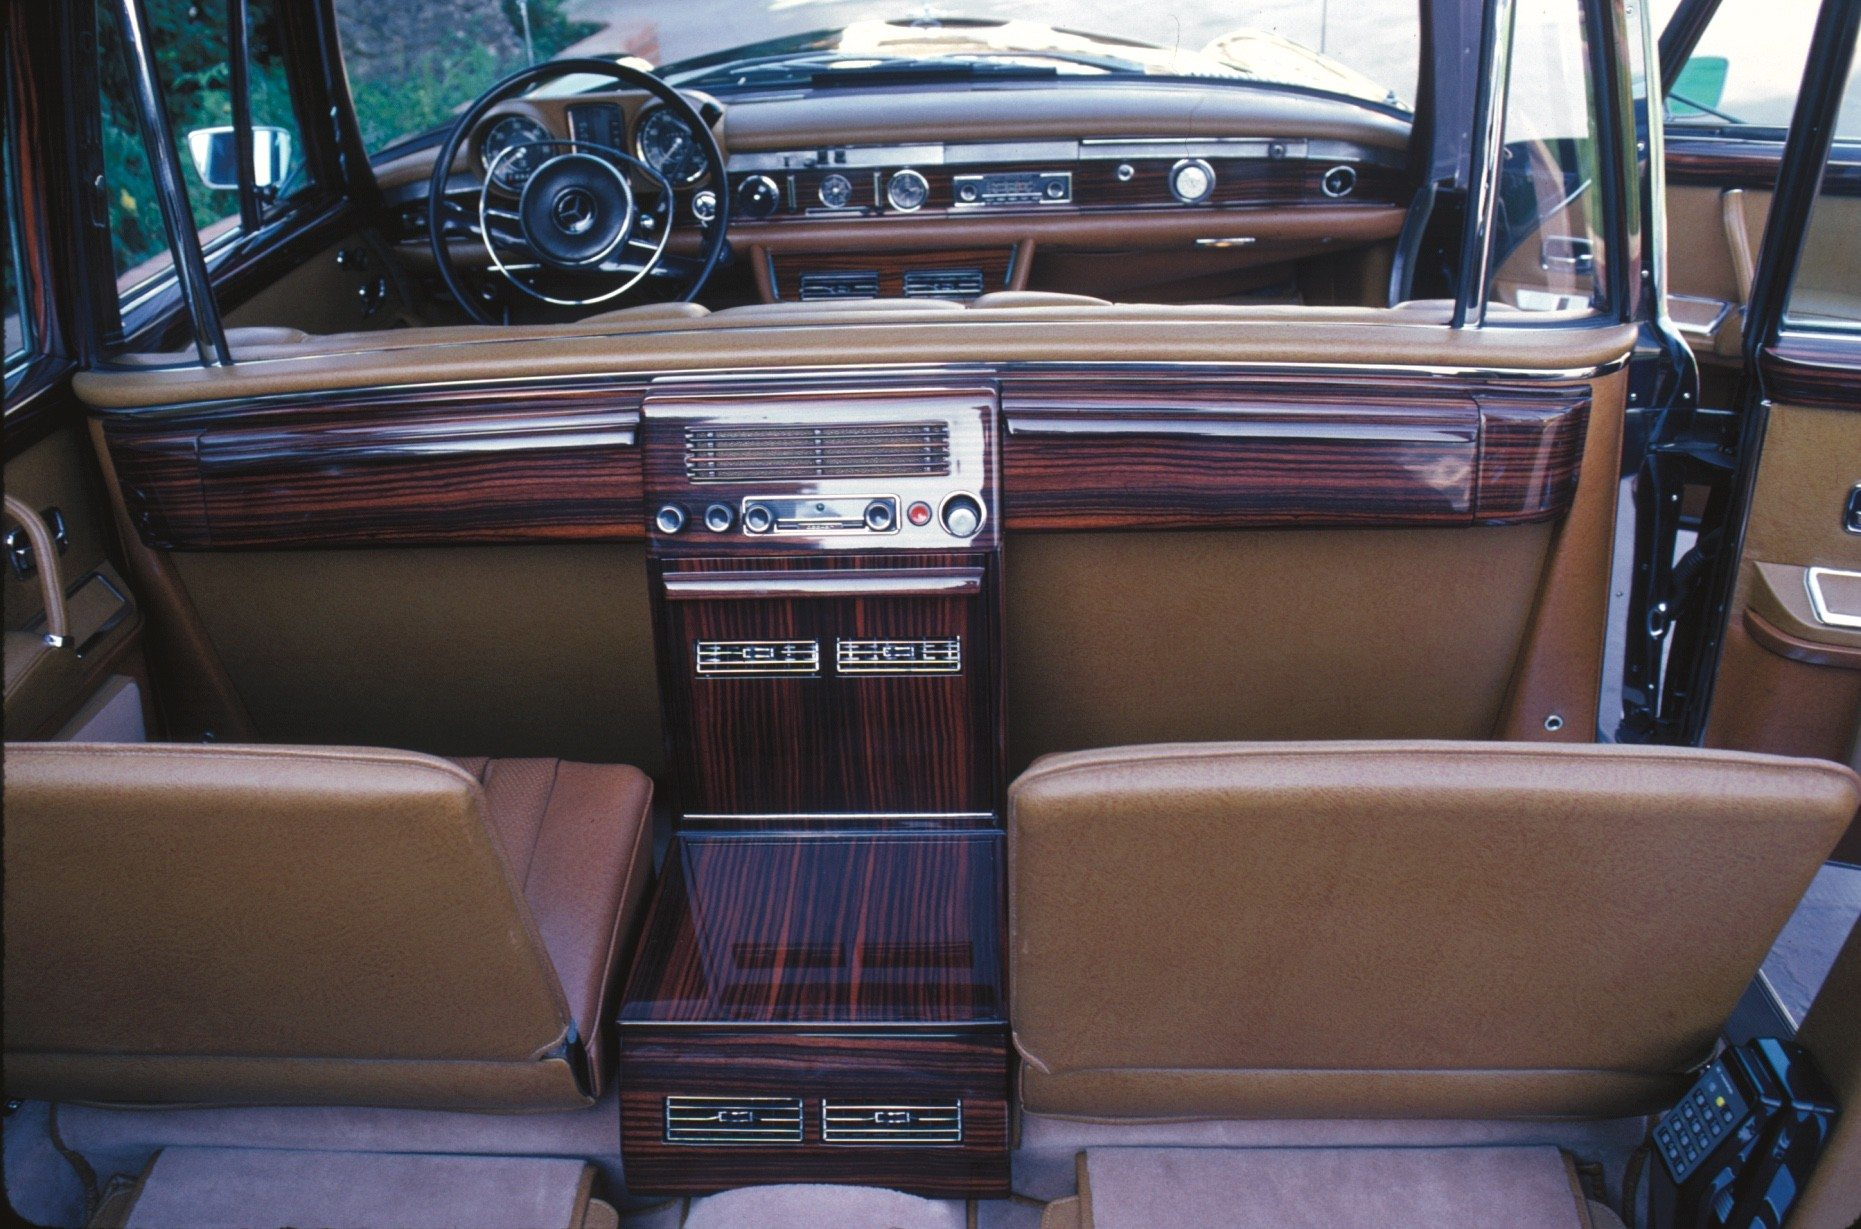 Mercedes-Benz 600 Landaulet Interior